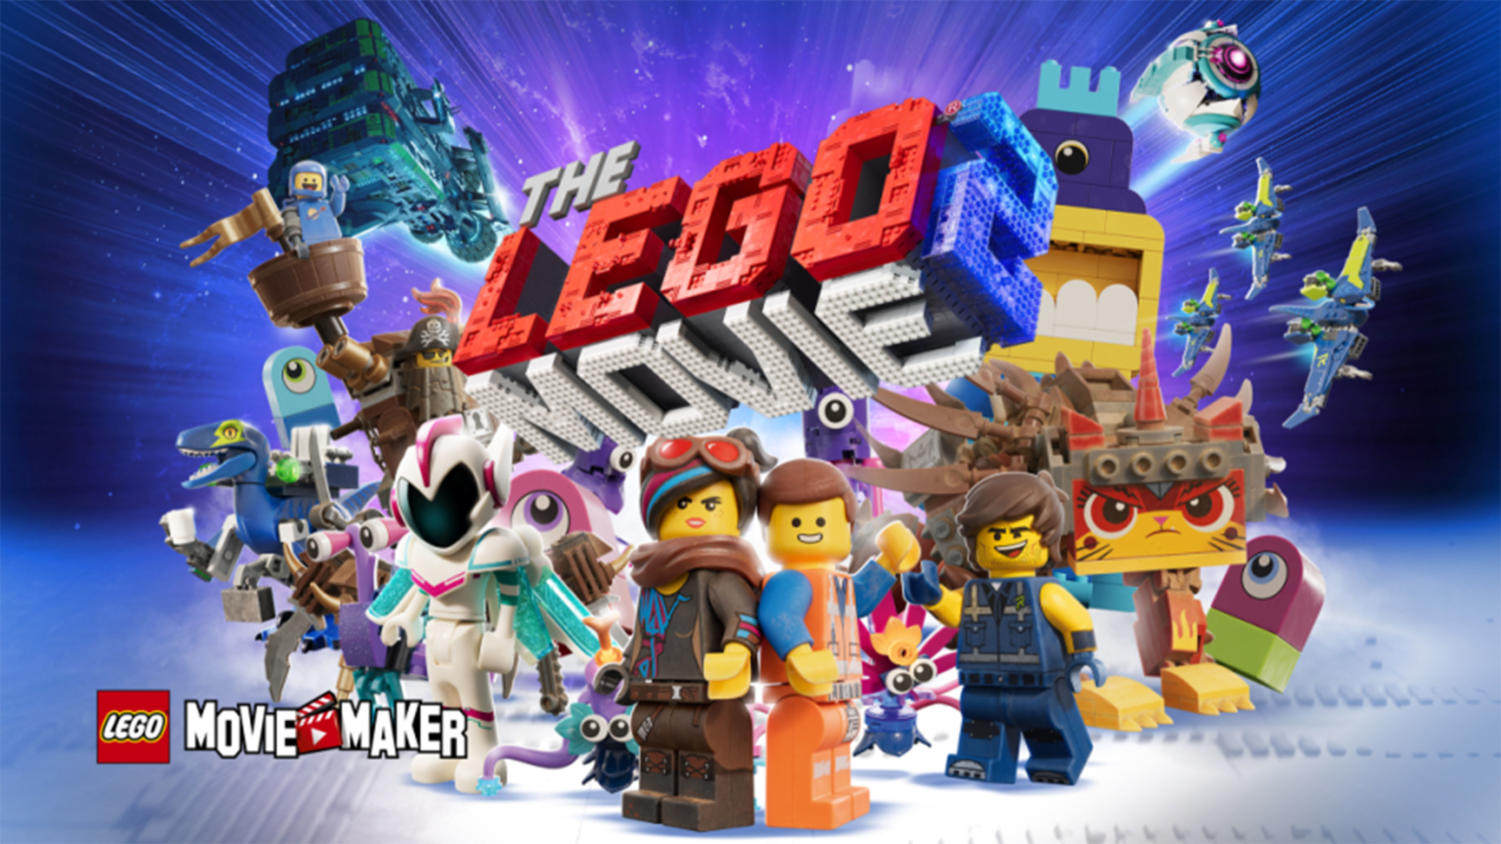 A promotional poster for the movie, which came out Feb. 8.